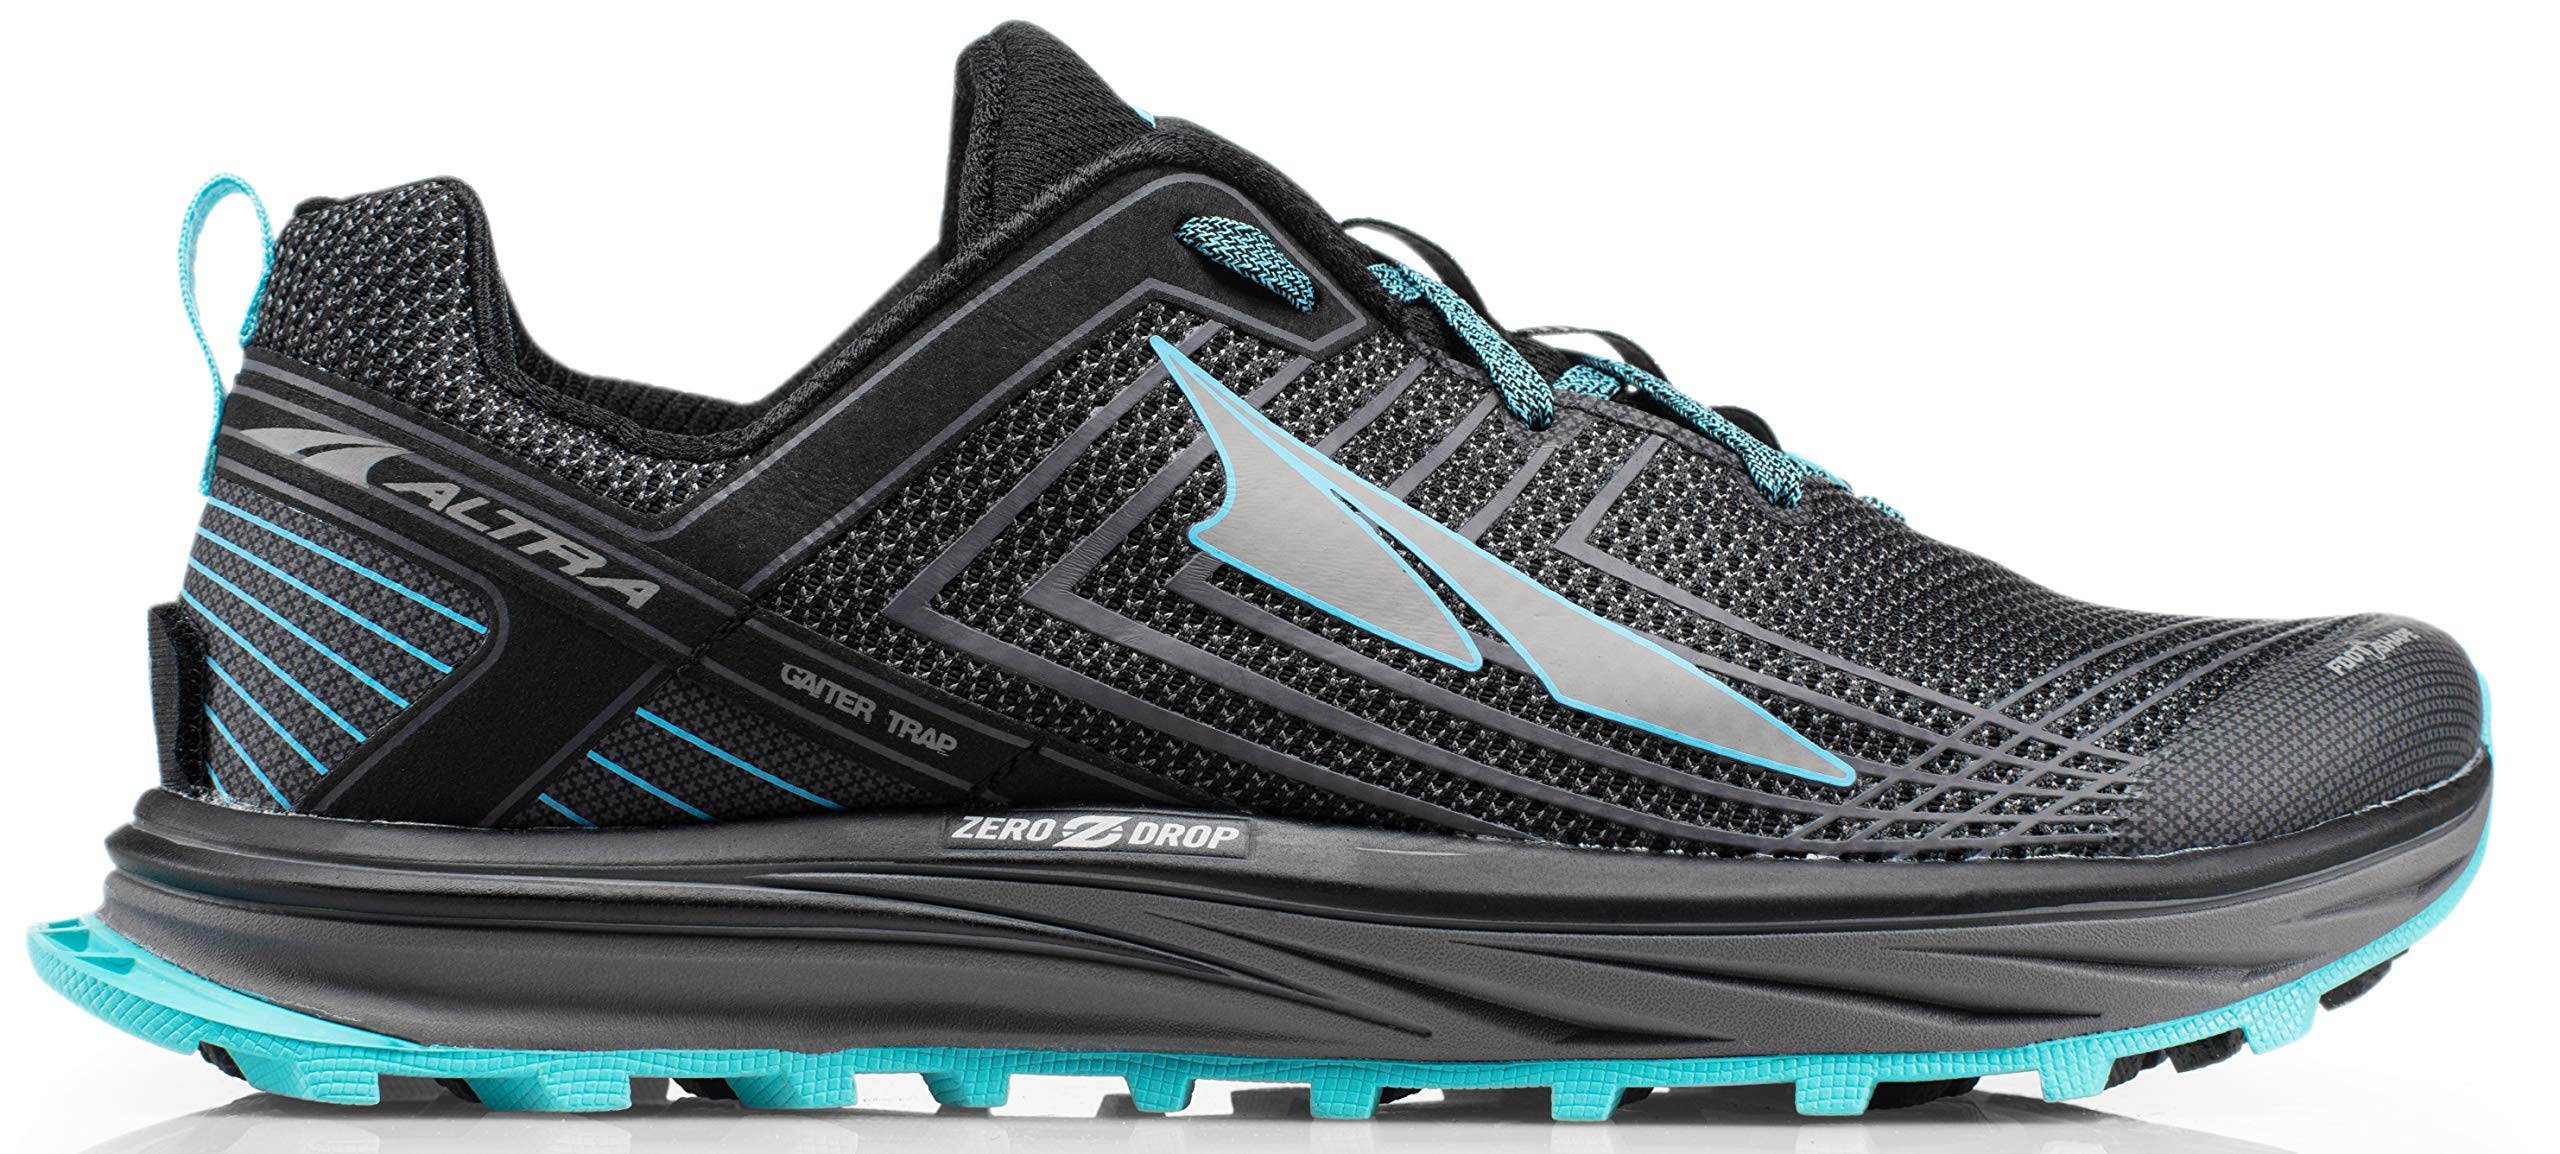 Altra AFM1957F Men's TIMP 1.5 Trail Running Shoe, Gray/Blue - 8.5 D(M) US by Altra (Image #1)